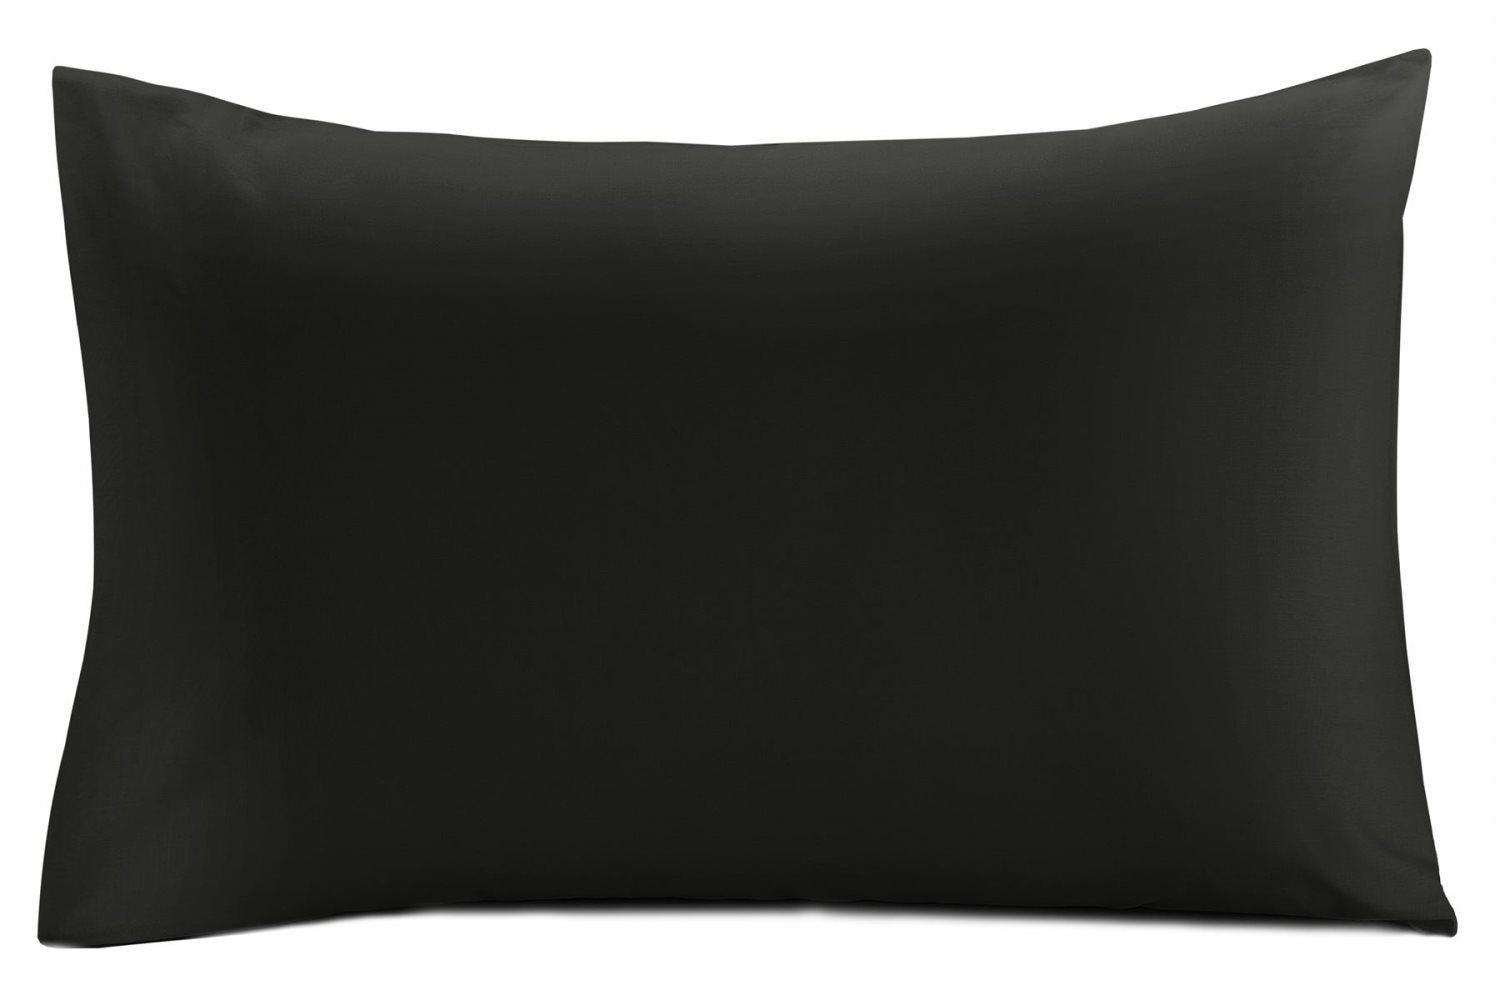 Emperor Pillowcase Pair Black 150 TC